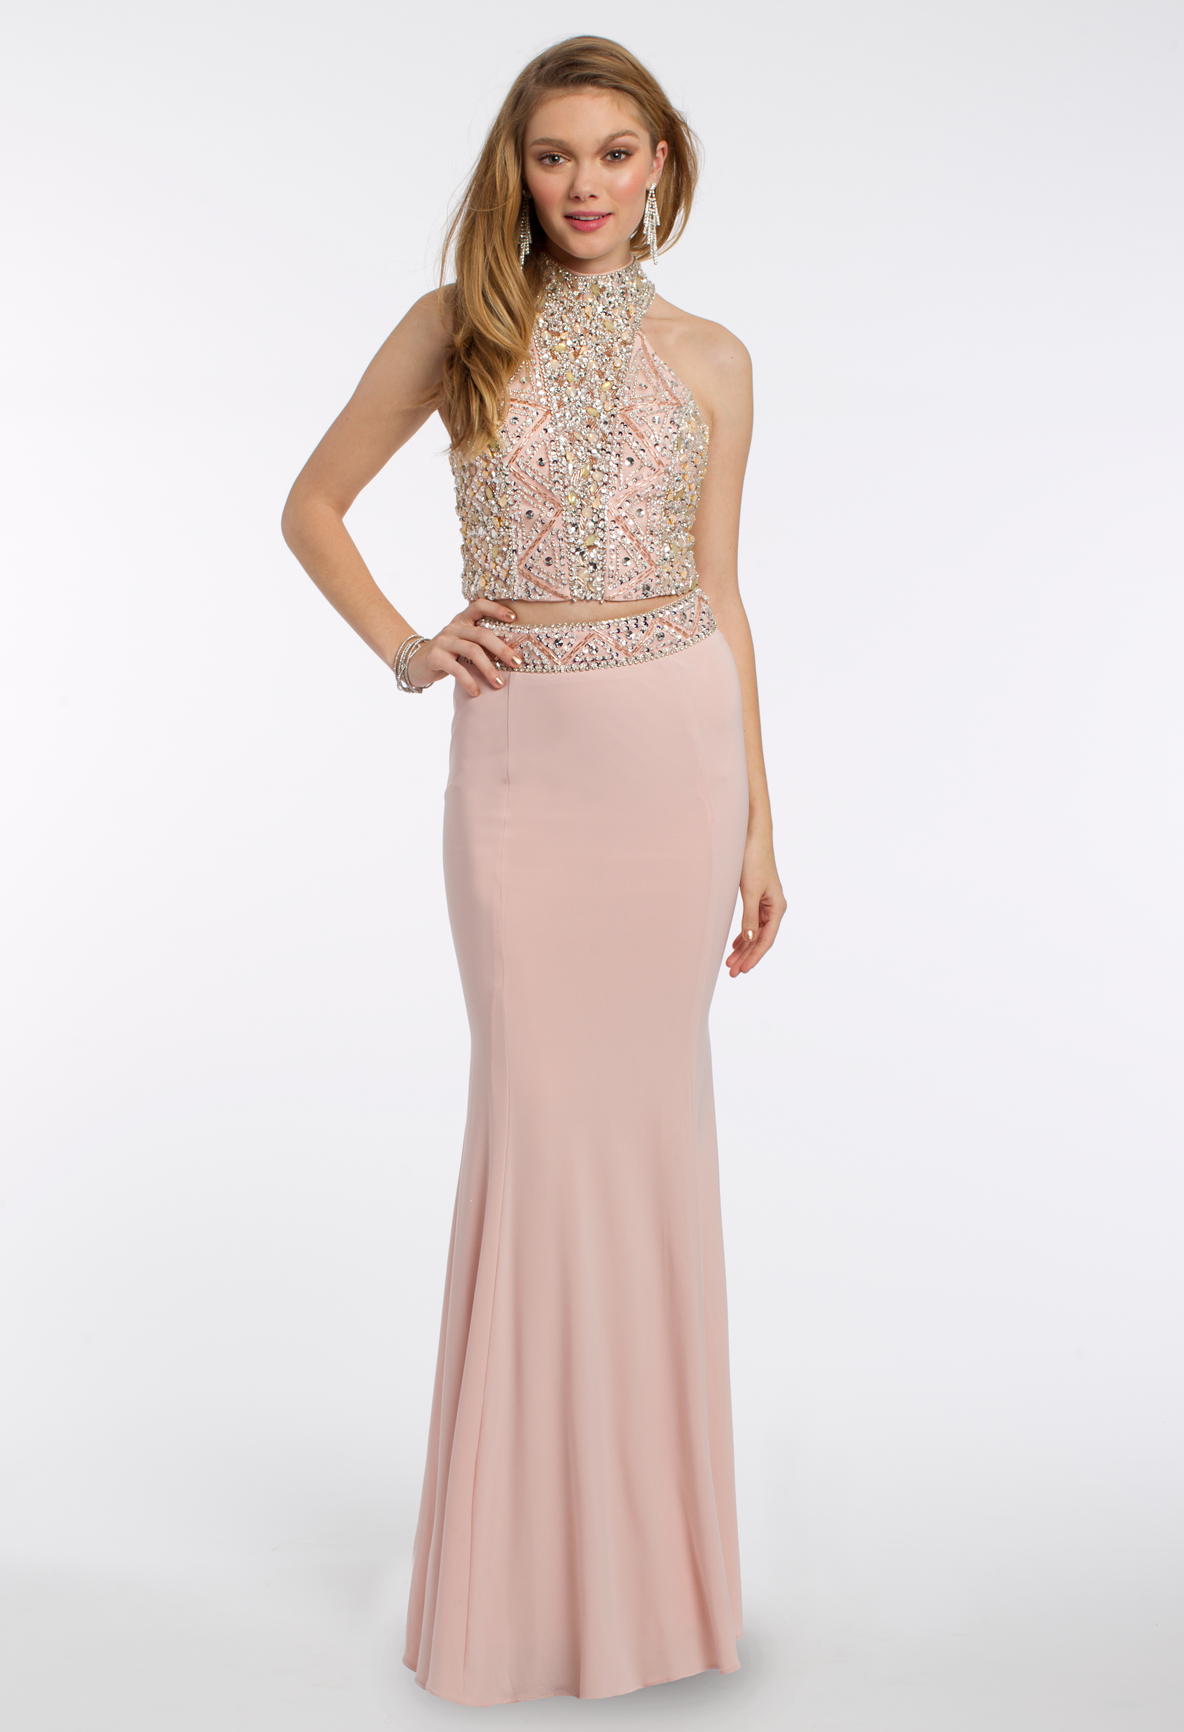 Give off a princess vibe in this polished prom dress! The beaded two ...